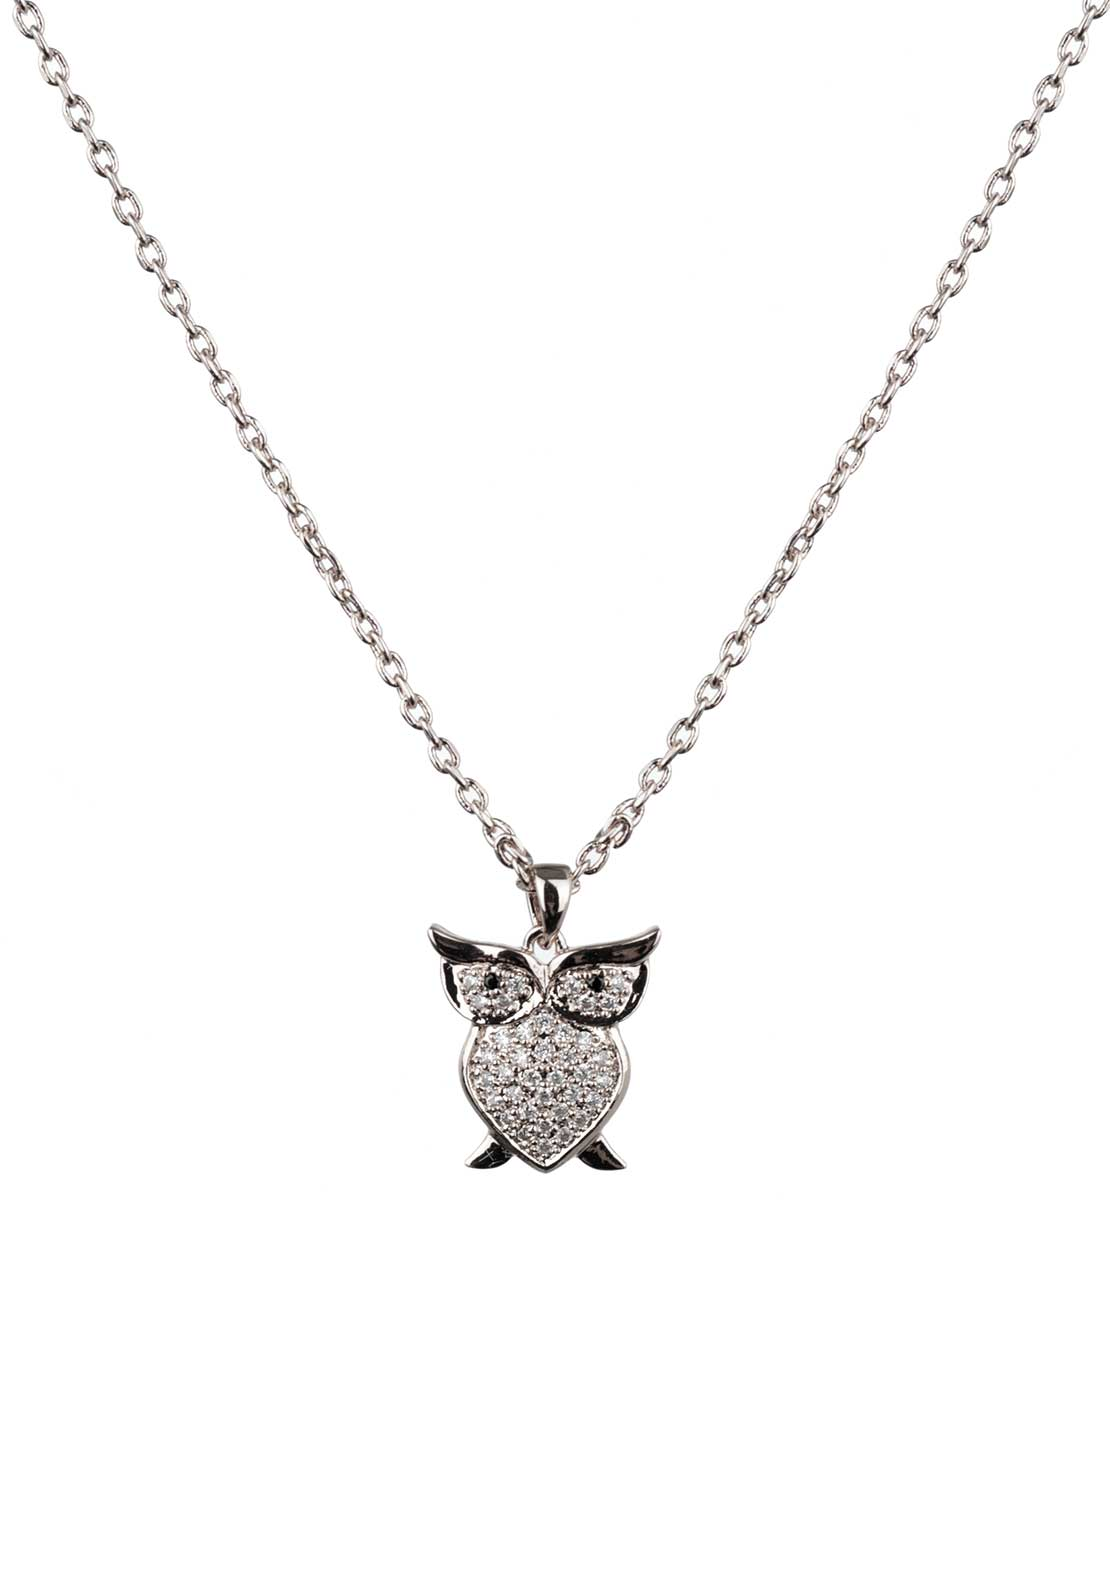 Absolute Jewellery Girls Pave Studded Owl Pendant Necklace, Silver